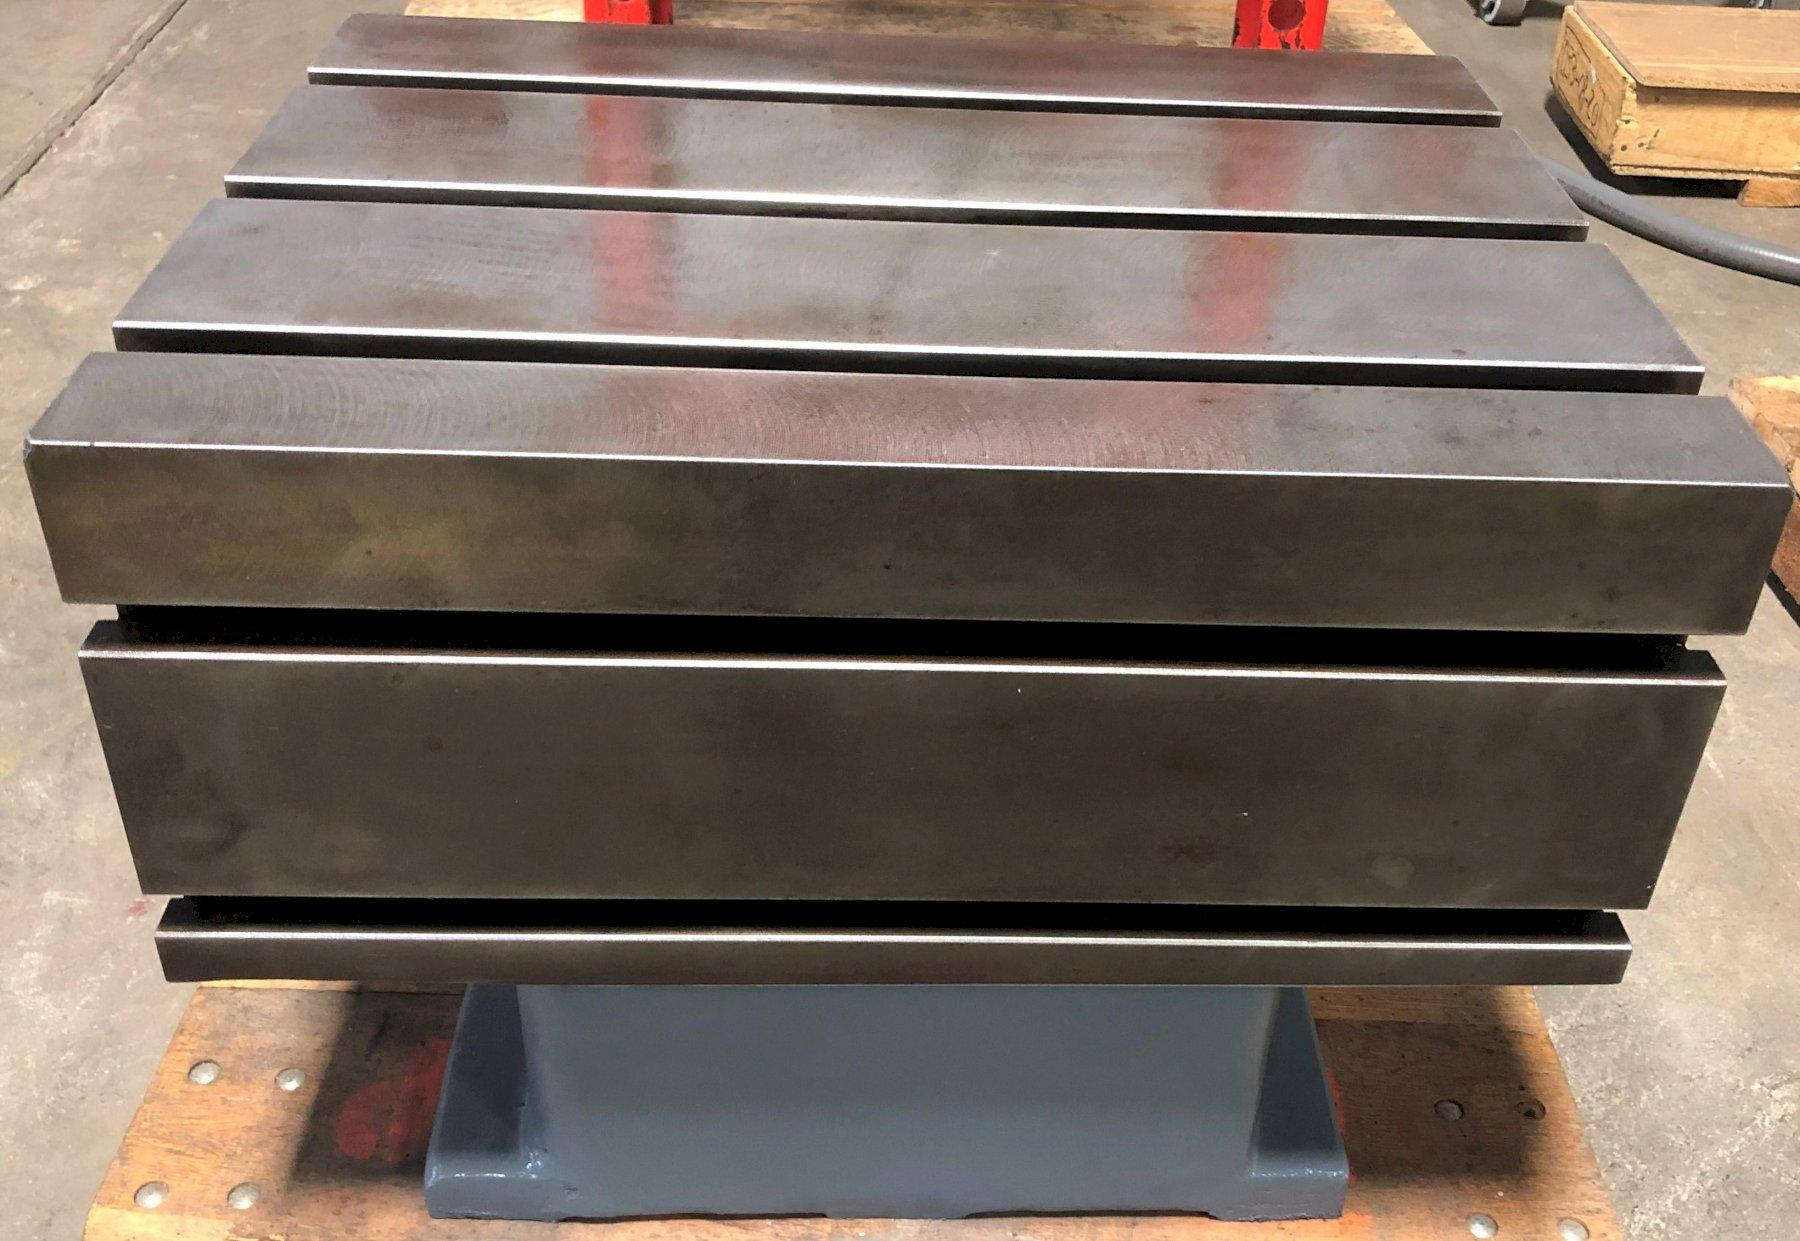 Box Drill Table, 18″ x 24″ Top (3) T-Slots, 10″ x 24″ Side (2) T-slots, 18″H, New-Never Used